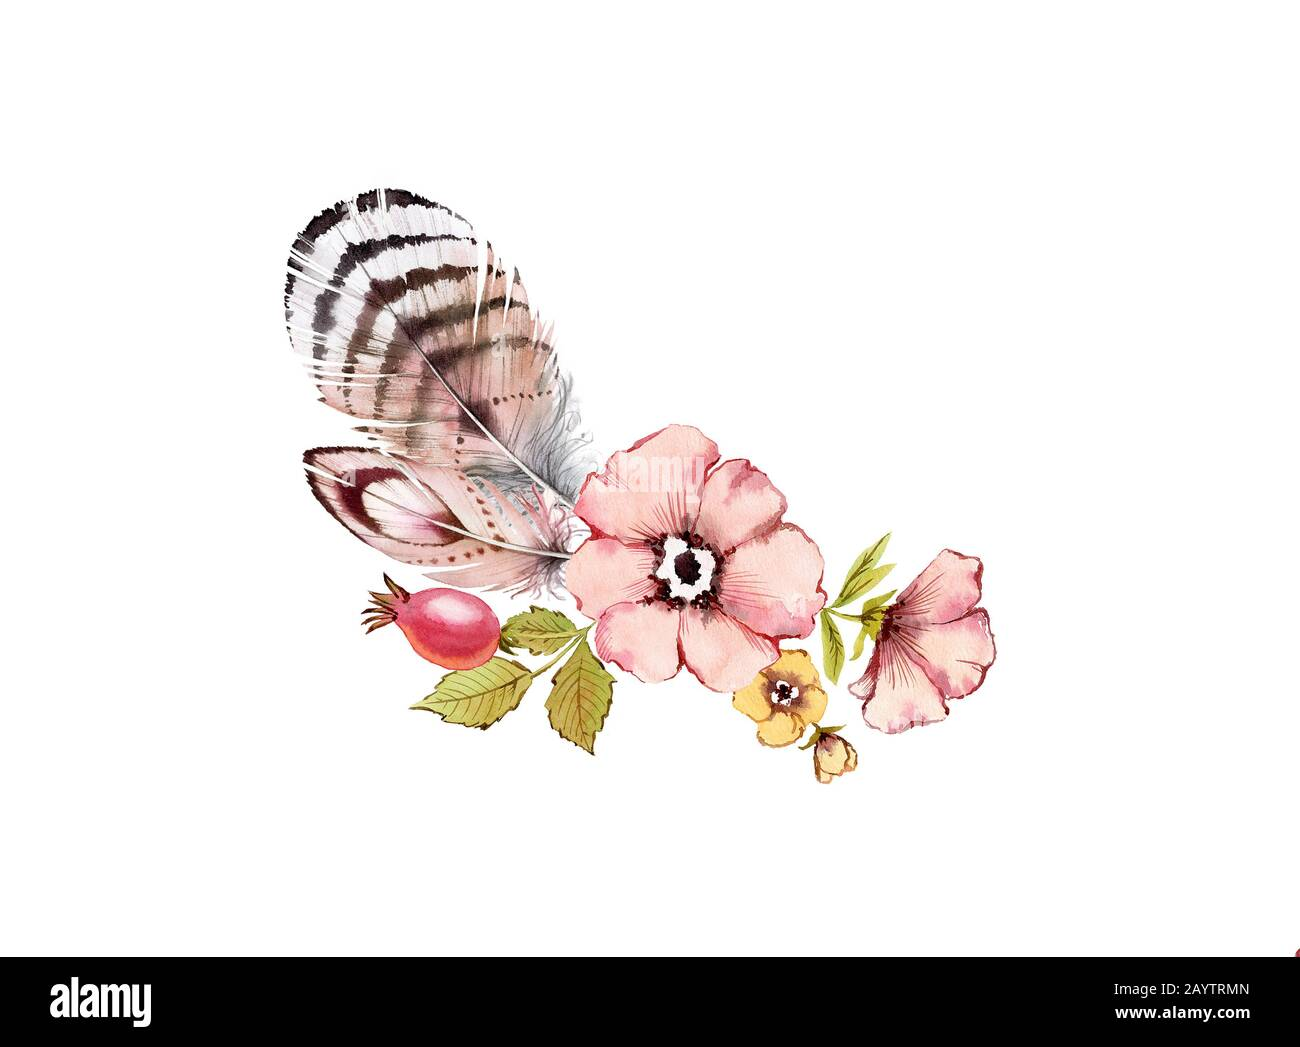 Watercolor Vintage Floral Composition Dusty Pink Flowers Bouquet Rose Hip Briar Leaves Feathers Isolated On White Background Hand Painted Stock Photo Alamy